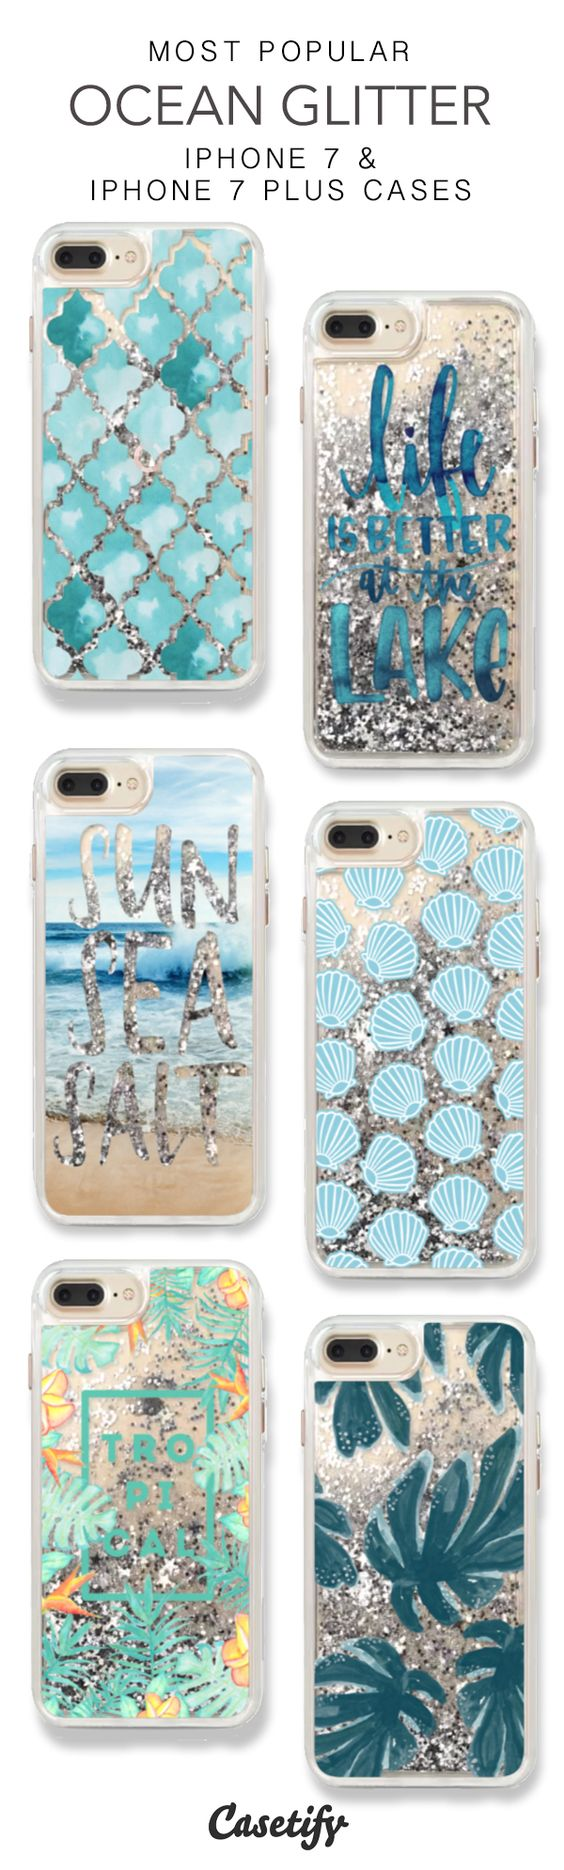 Most Popular Ocean Glitter iPhone 7 Cases & iPhone 7 Plus Cases. More glitter iPhone case here >  https://www.casetify.com/en_US/collections/iphone-7-glitter-cases#/: